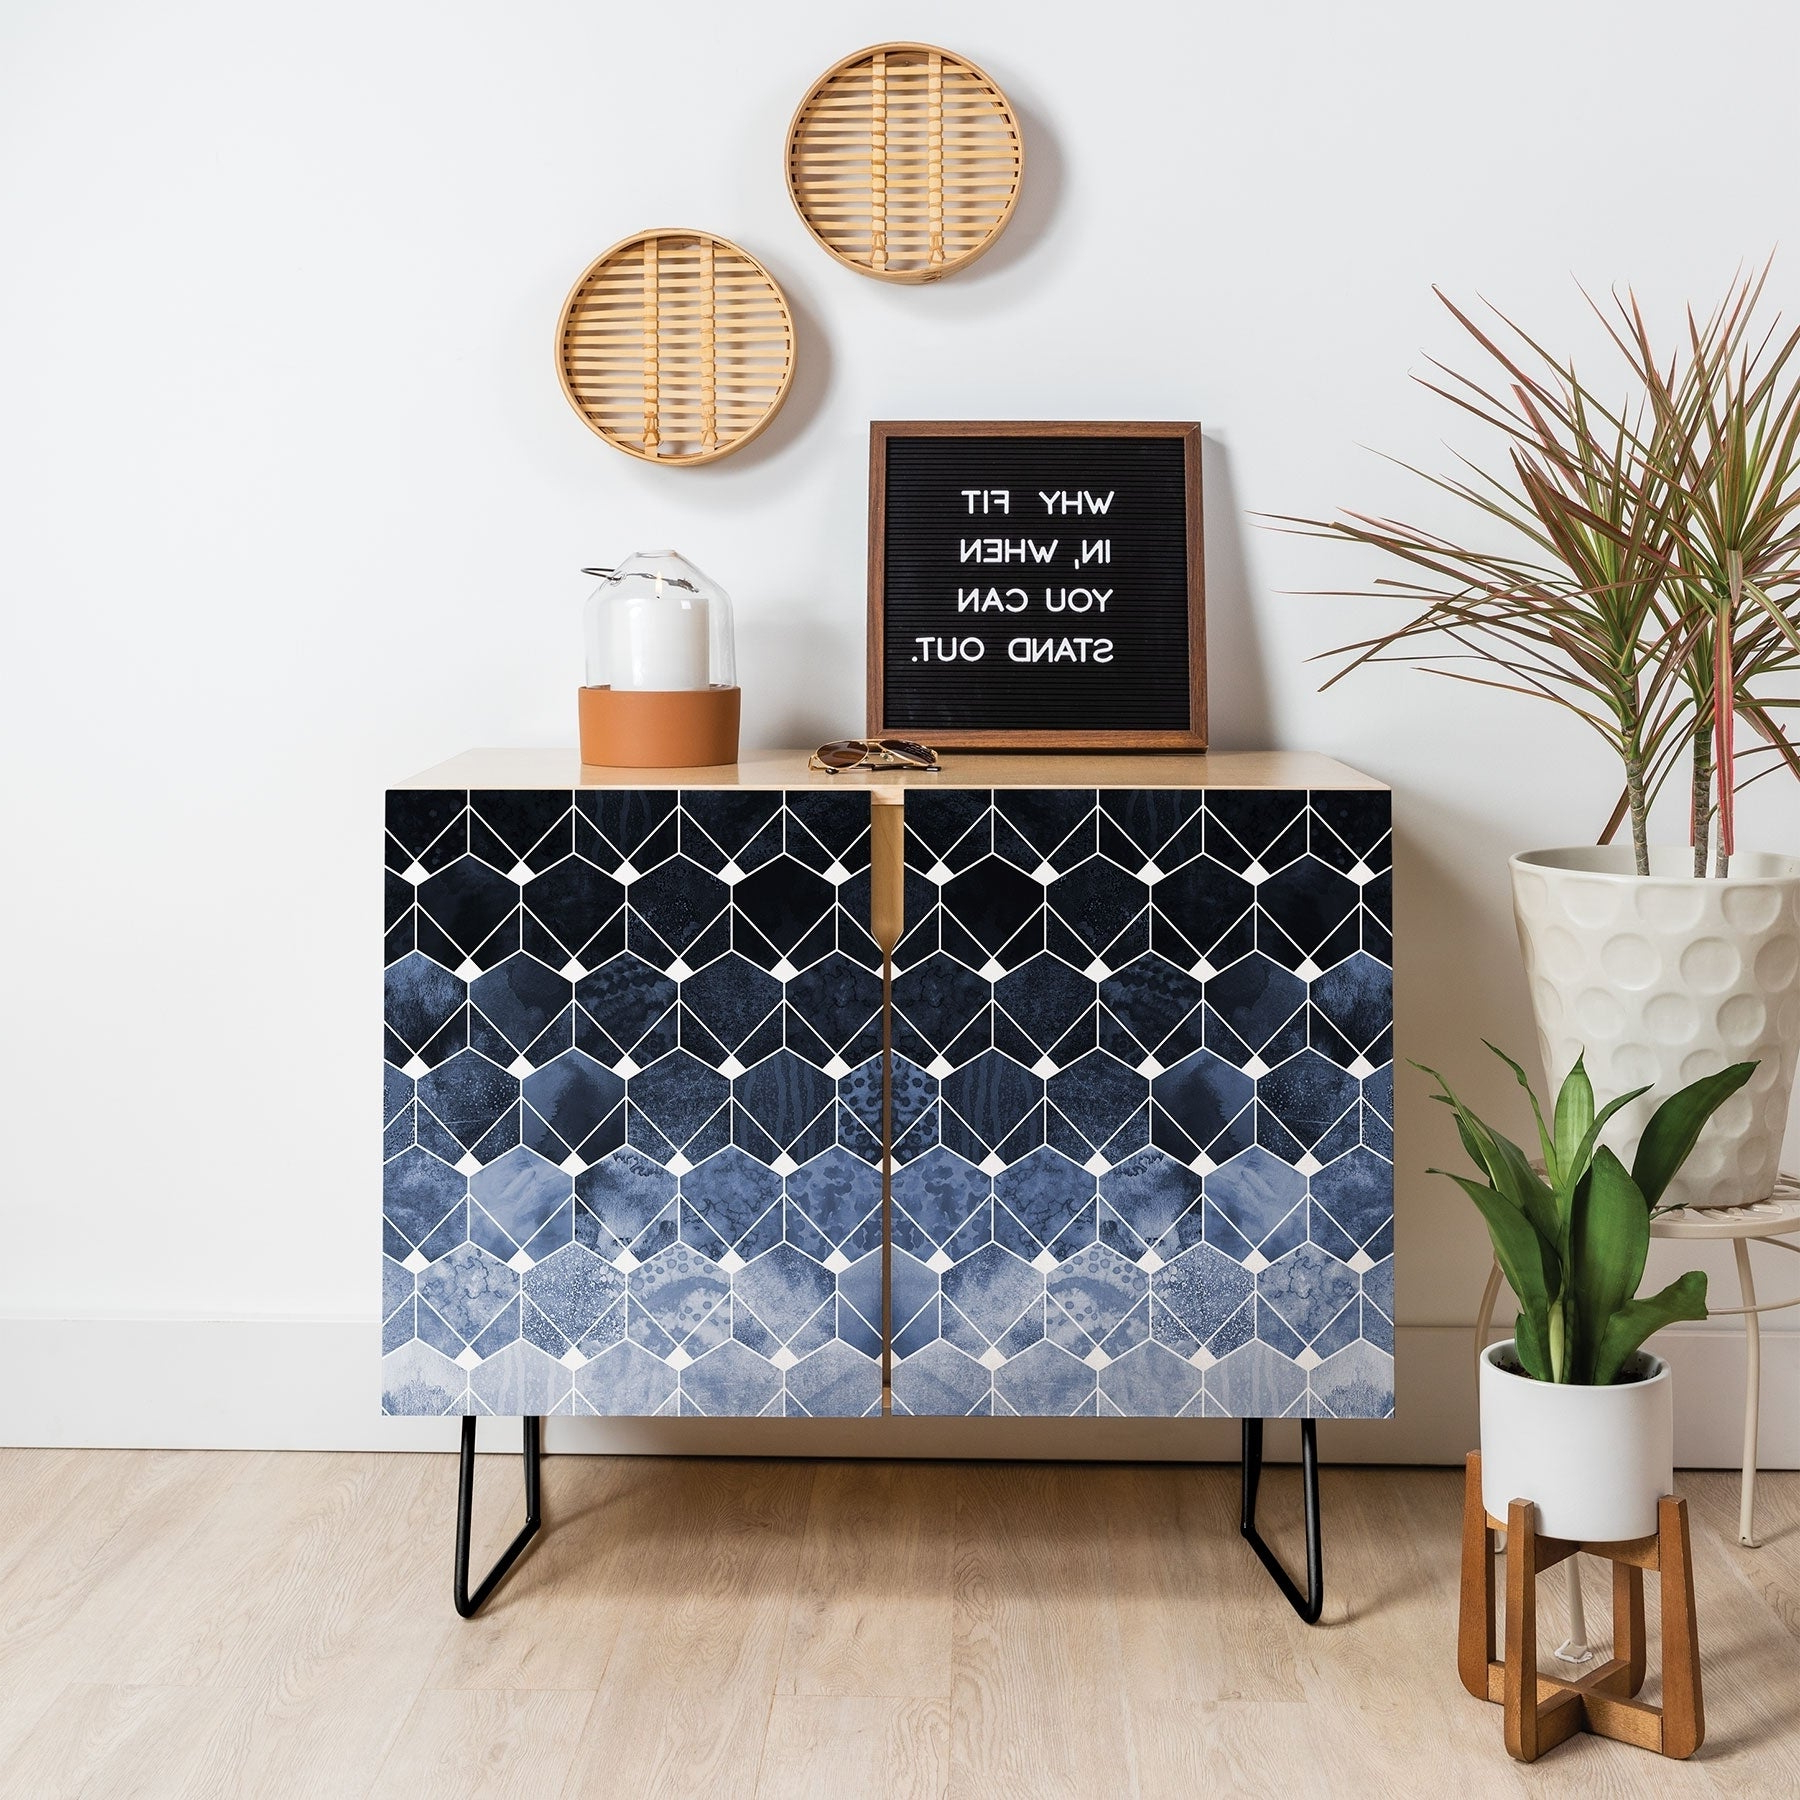 Deny Designs Blue Hexagons And Diamonds Credenza (Birch Or Walnut, 2 Leg  Options) With Regard To Exagonal Geometry Credenzas (View 12 of 20)